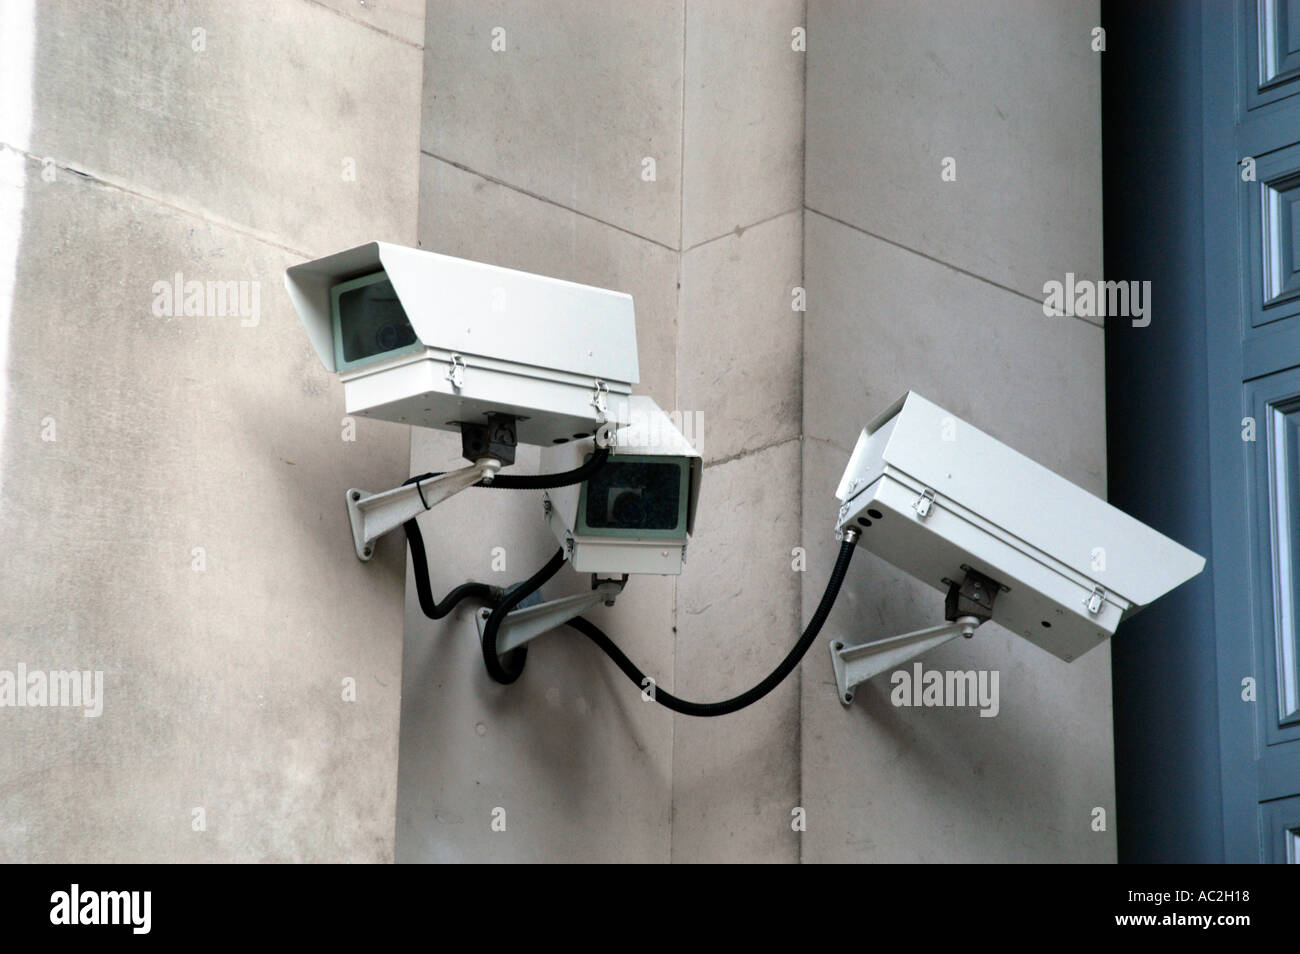 CCTV security cameras London England UK Stock Photo